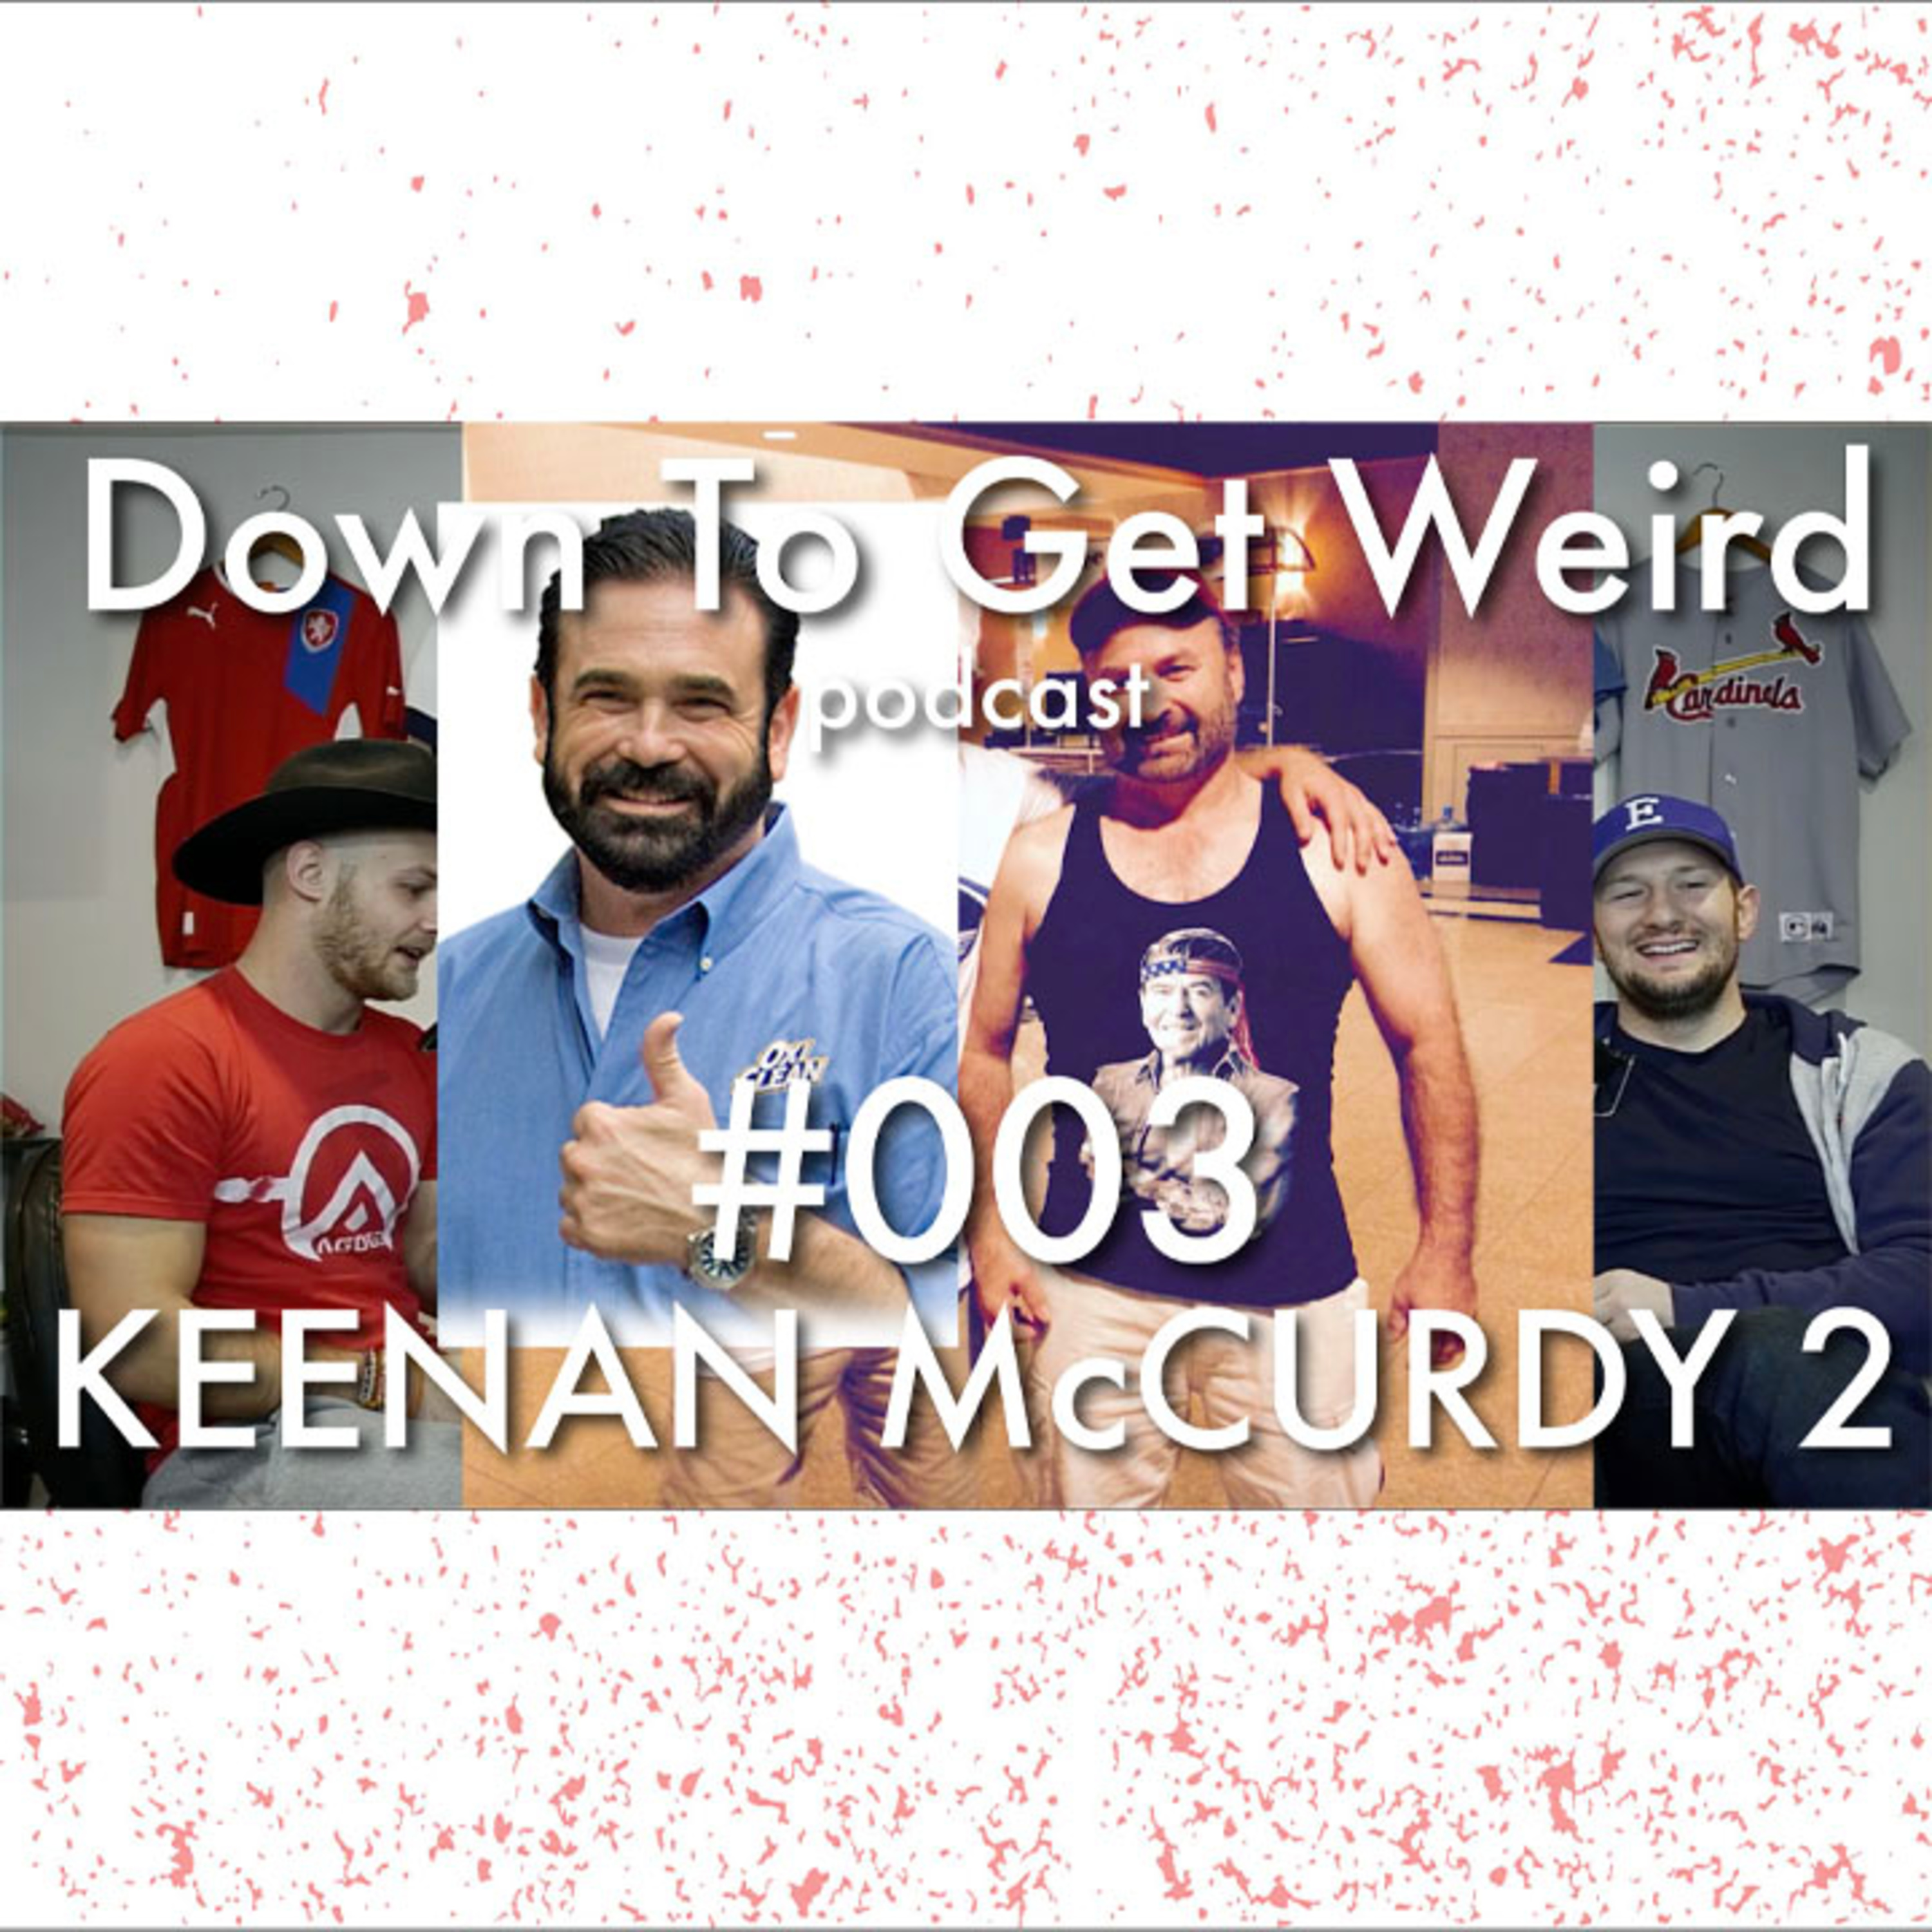 003 - Keenan McCurdy 2 - Is sharing really a good thing?, Life with universal basic income